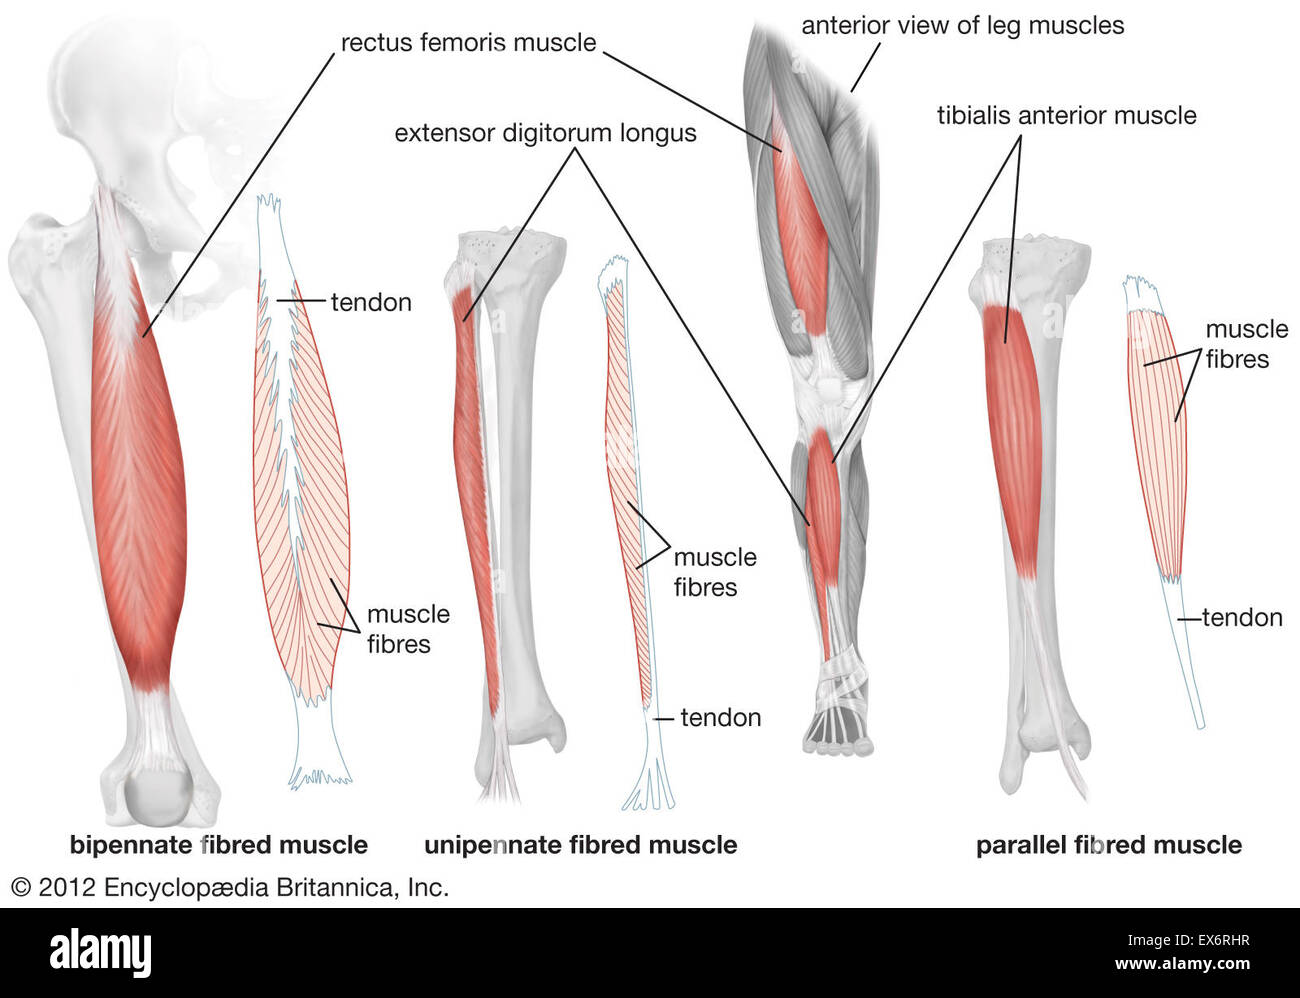 anterior view of human leg muscles stock photo: 84972771 - alamy